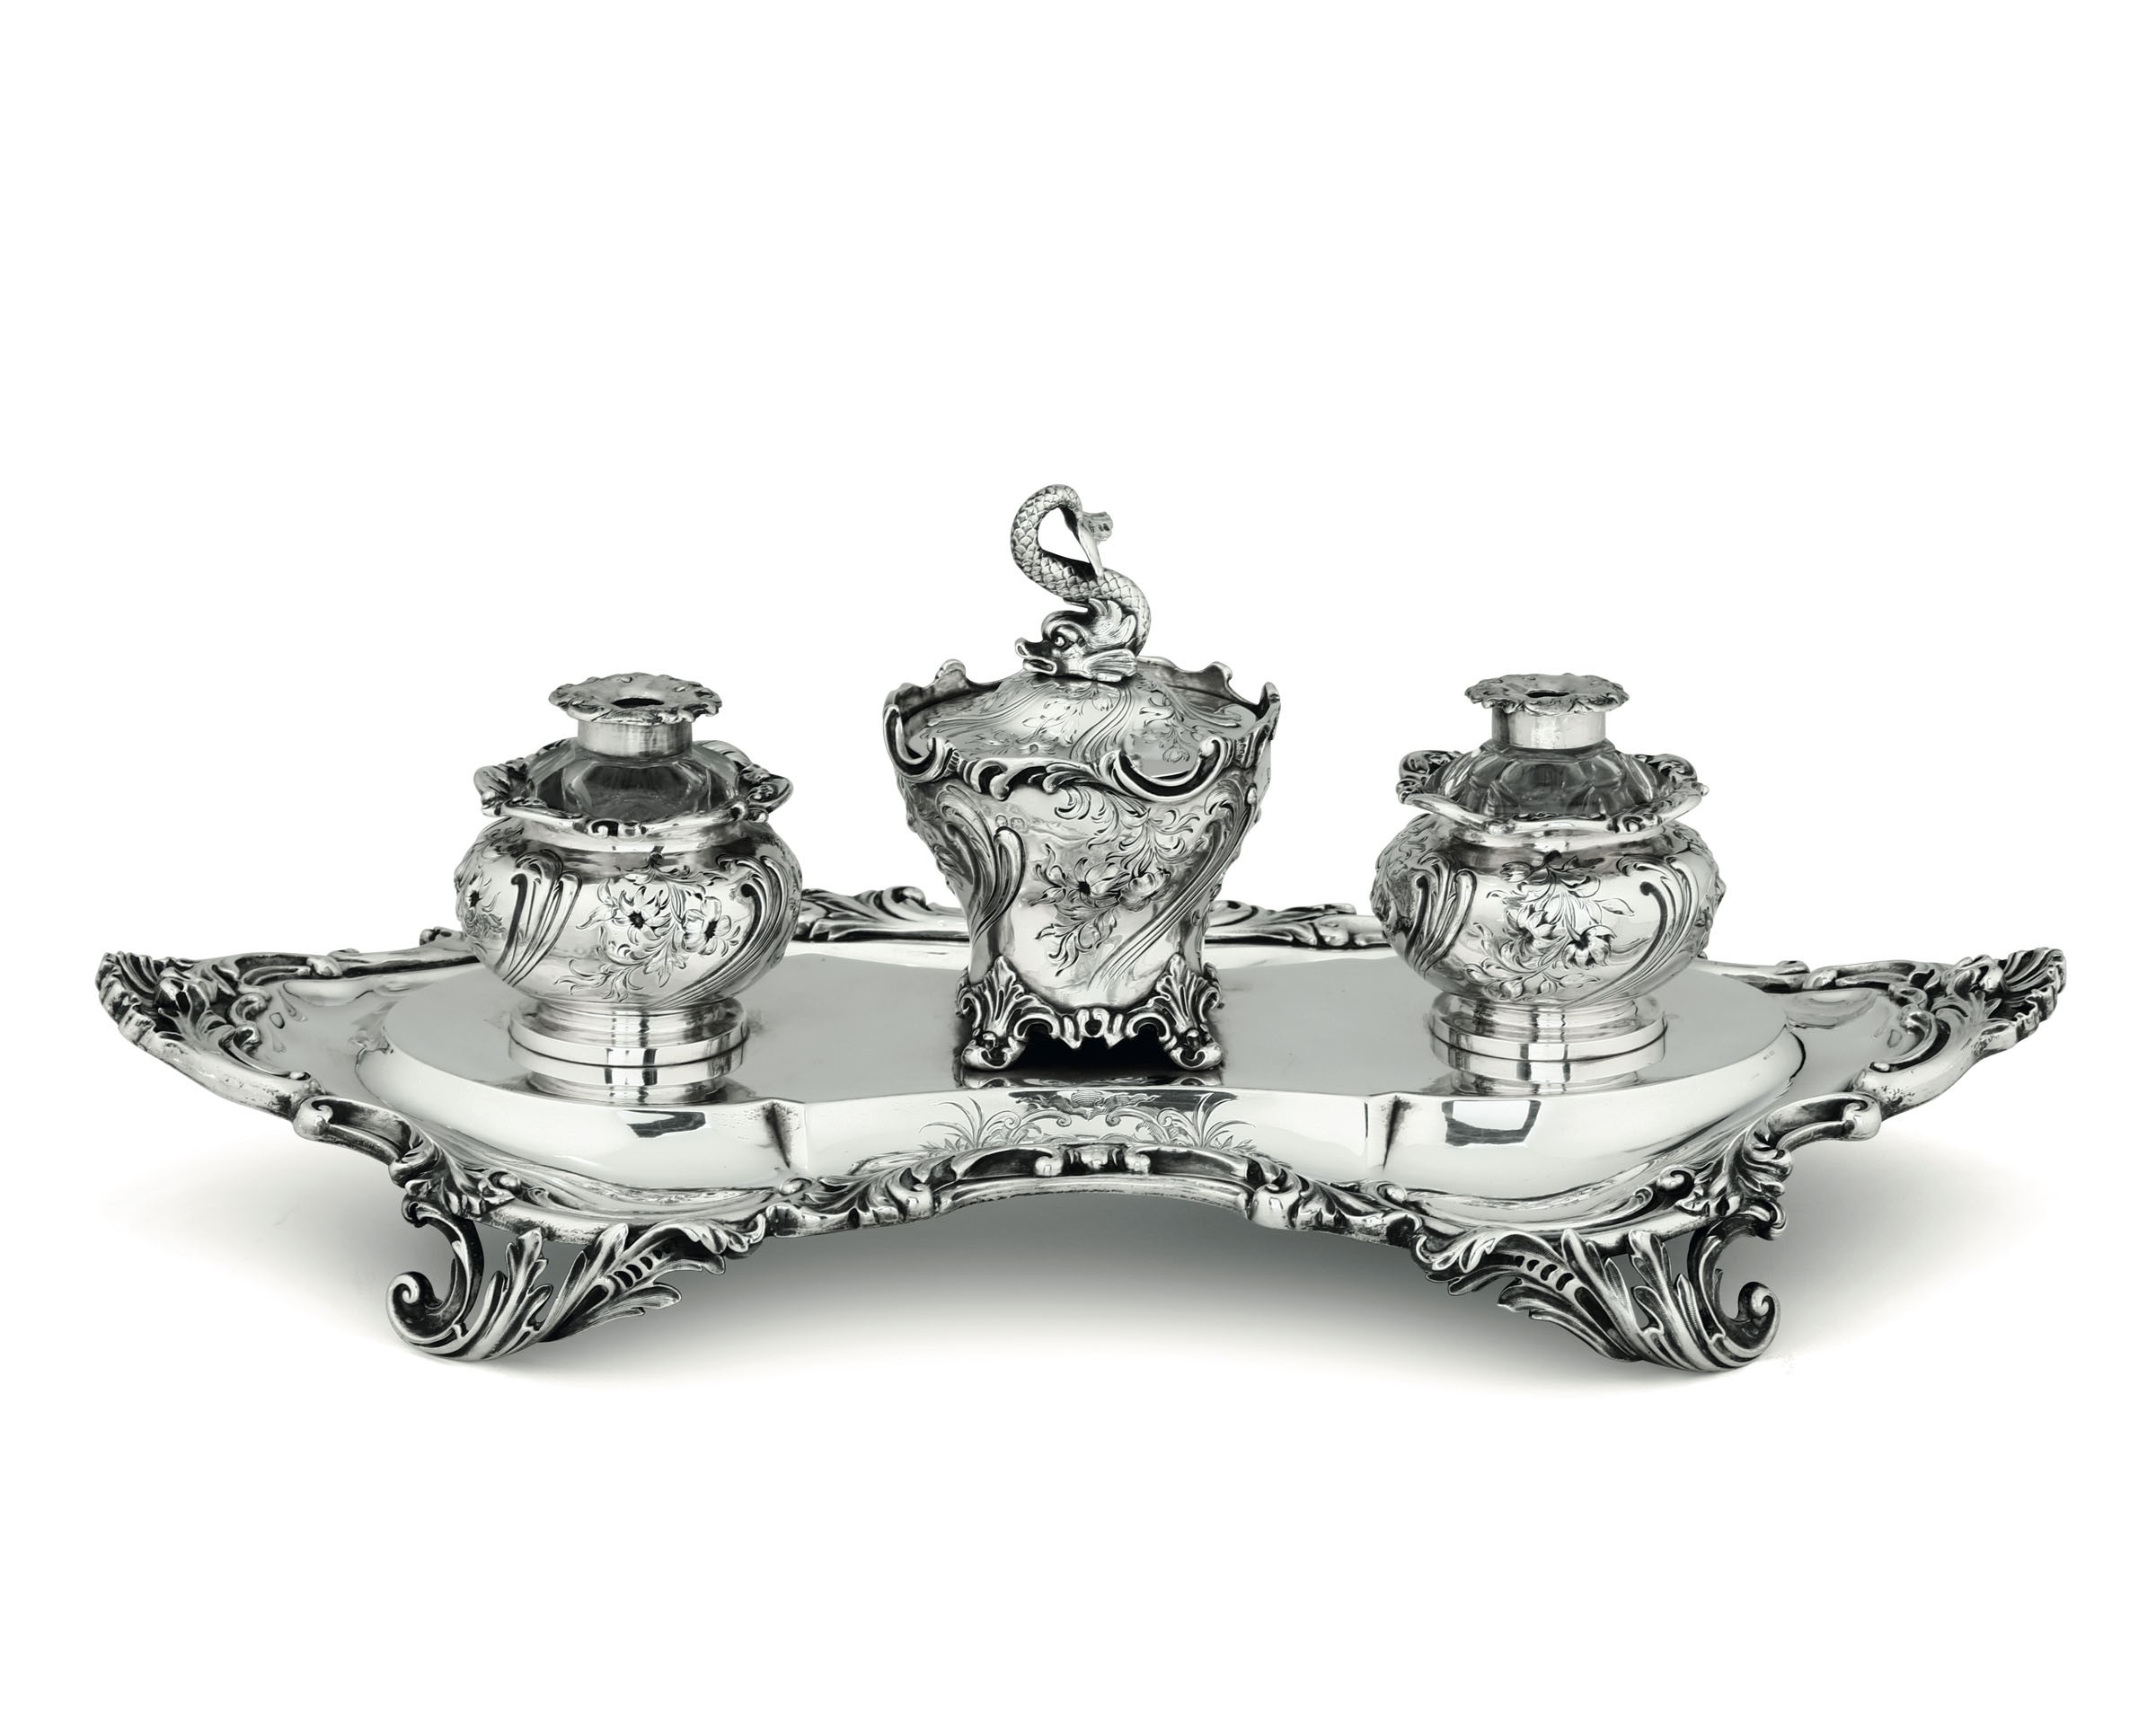 Lot 33 - A silver inkstand, London, 1847 - Molten, embossed and chiselled silver. [...]